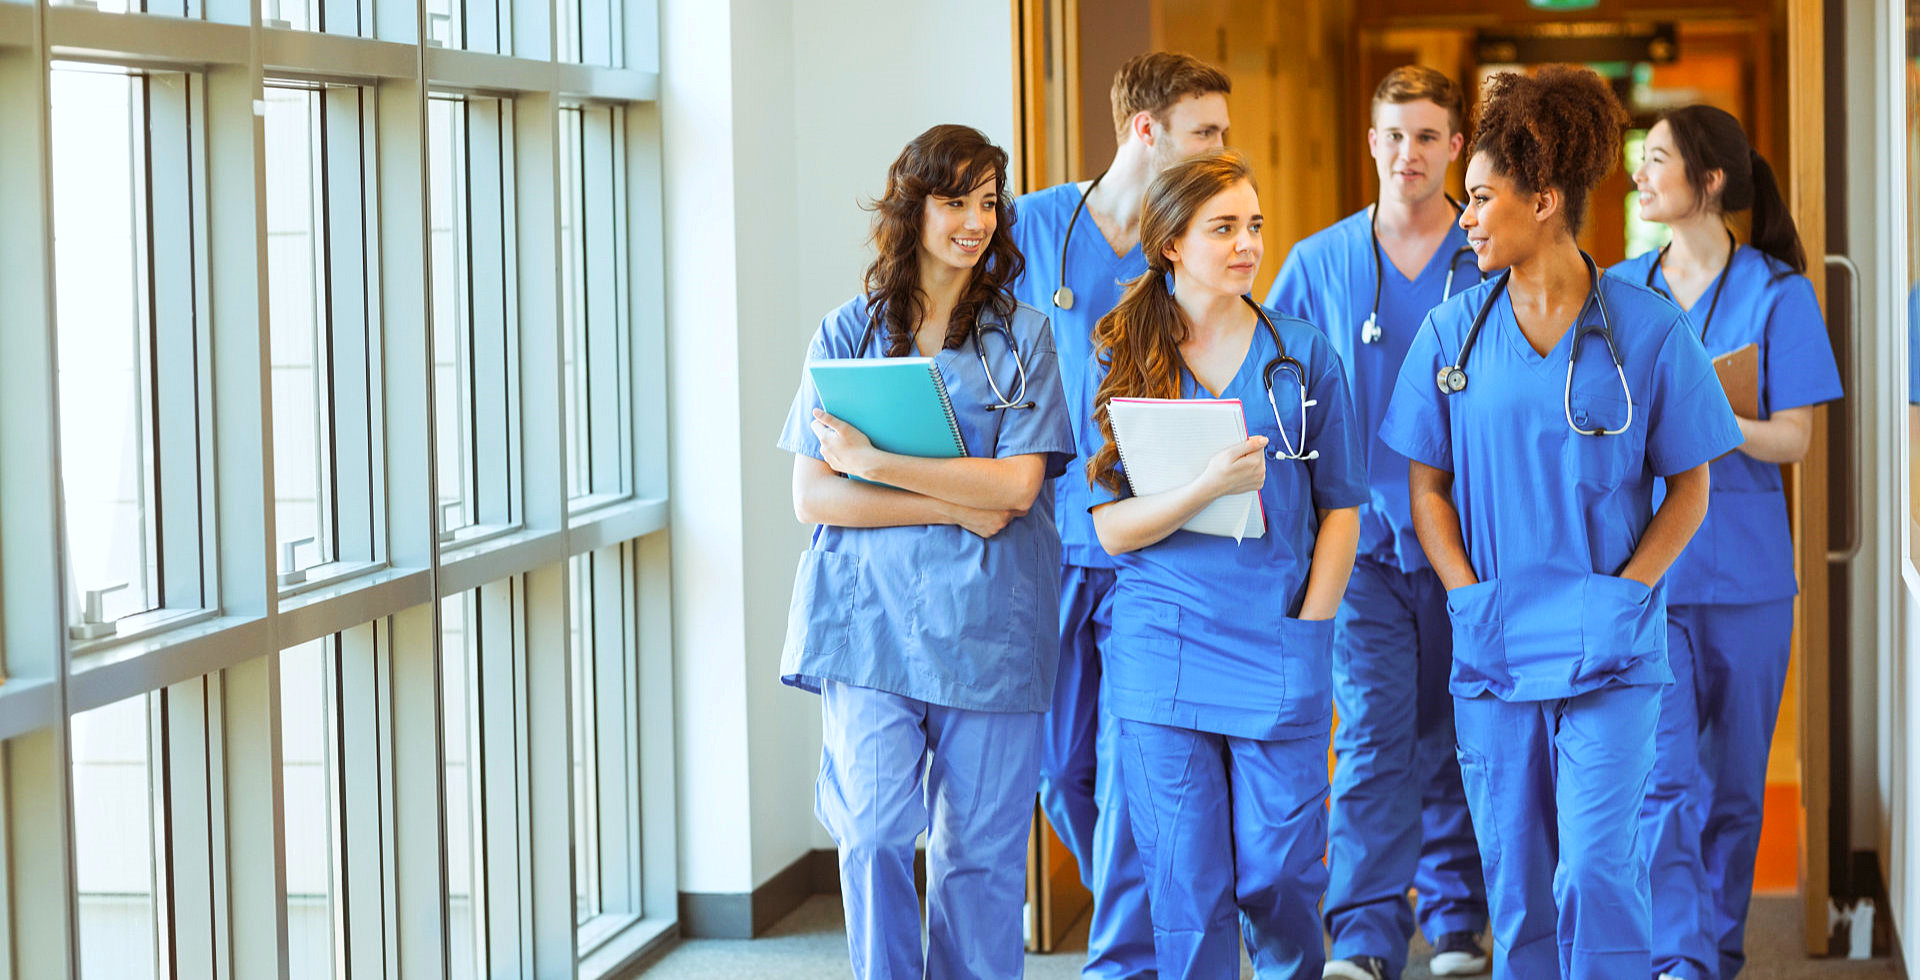 Group of student doctors